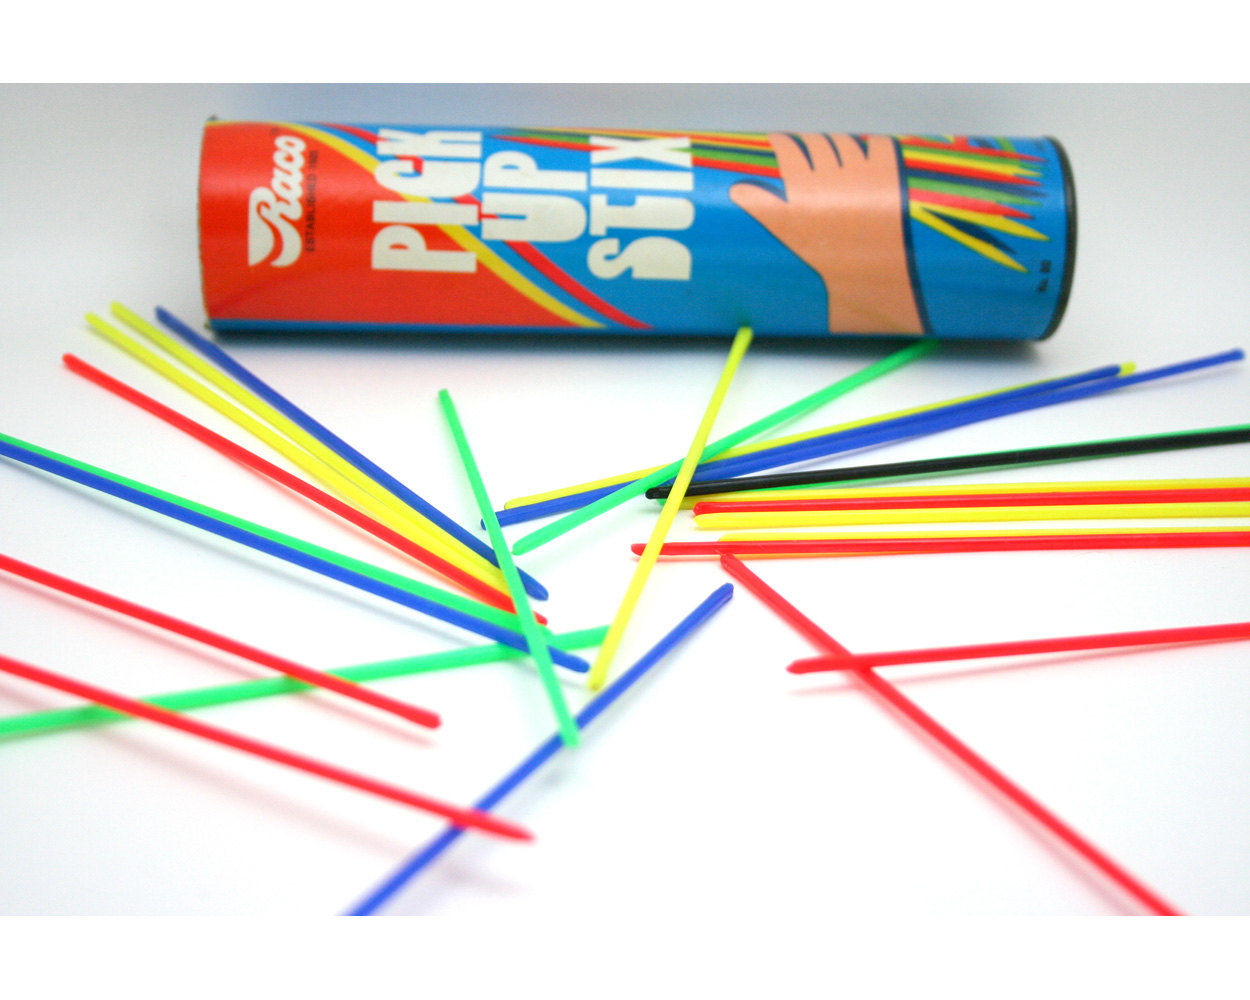 Clipart of pick up sticks game free.